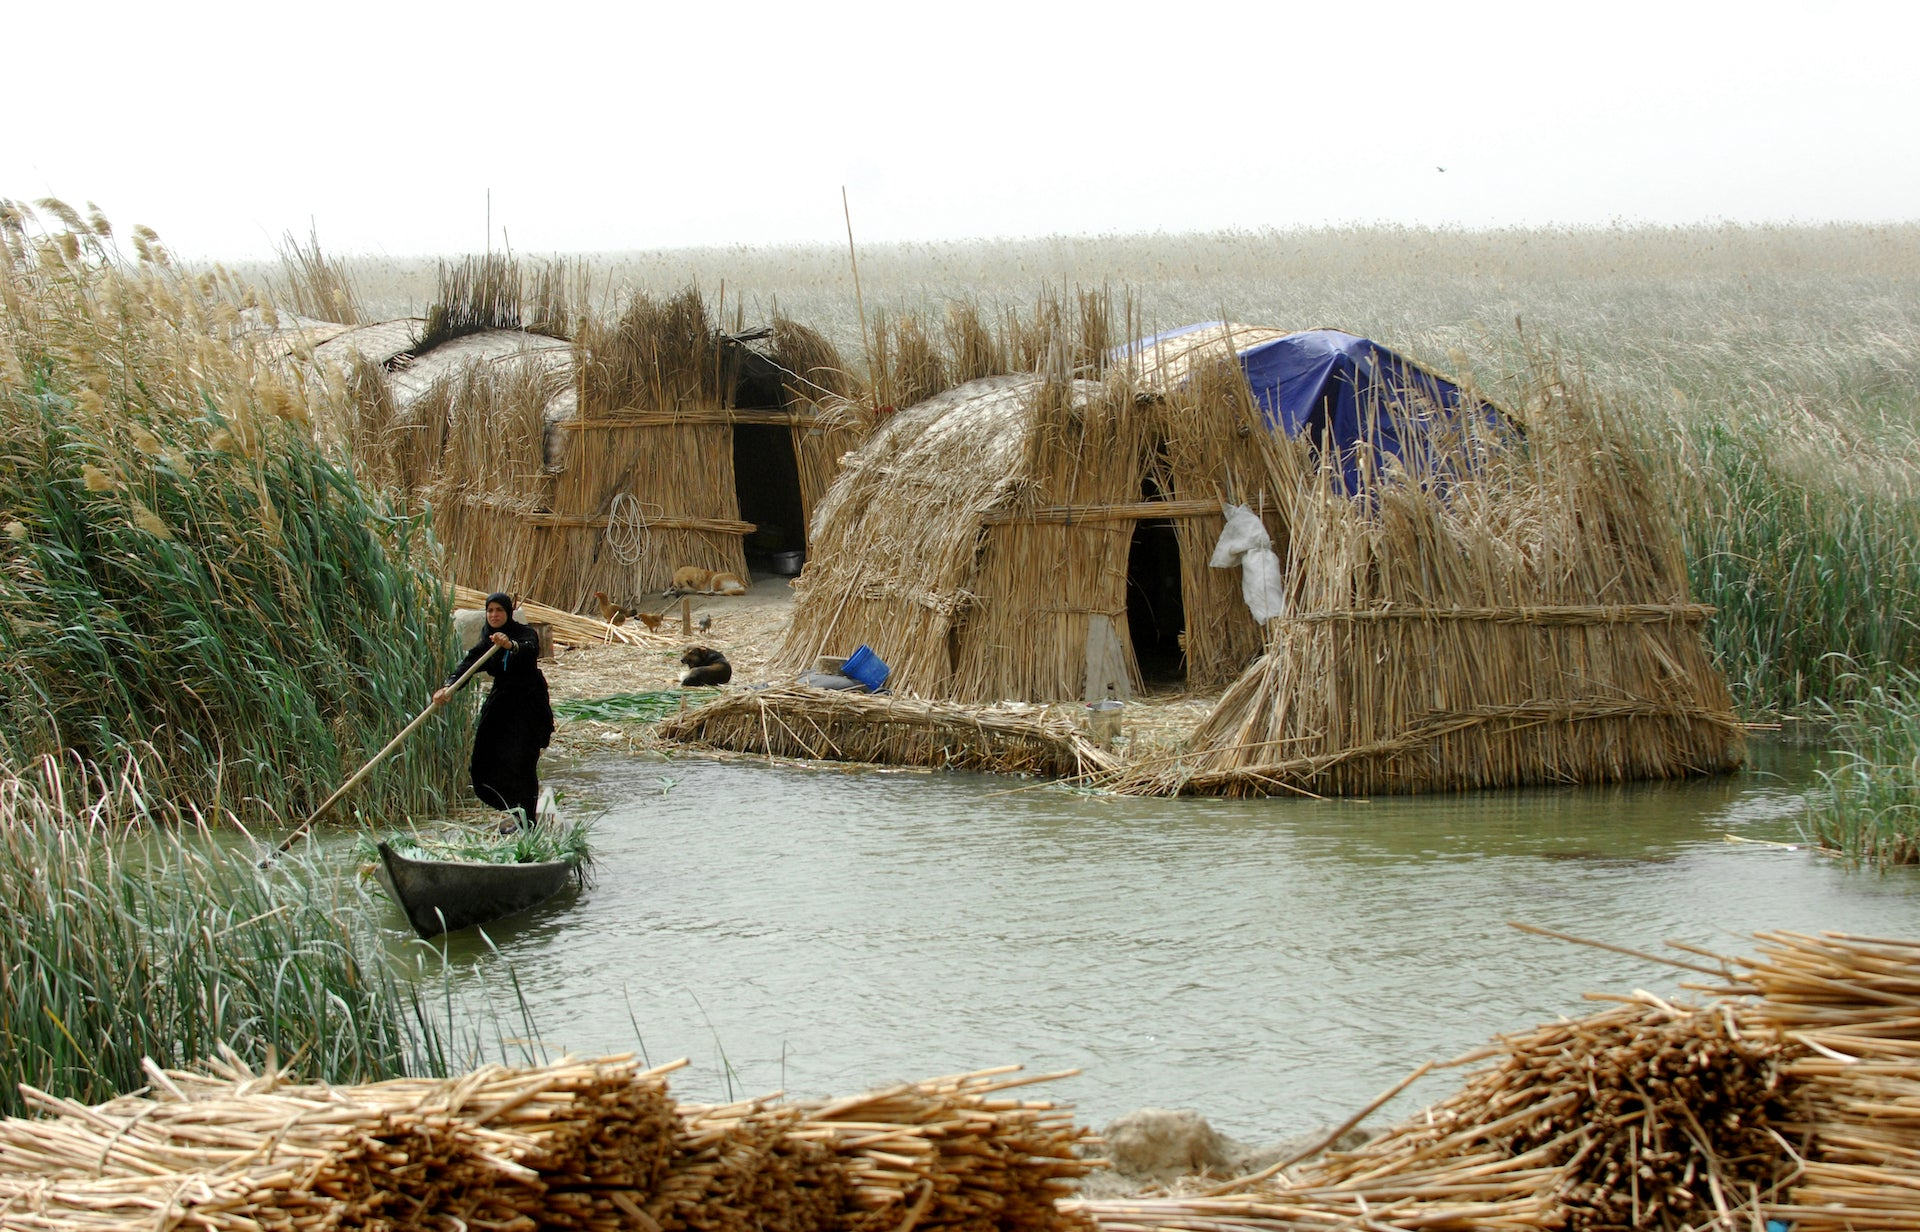 Qasab reed has long served as raw material for homes, handicrafts, tools, and animal fodder with the distinctive mudhif houses of the Ma'dan people appearing in Sumerian artwork from 5000 years ago. Photo © Esme Allen; from the book Lo-TEK, courtesy of Julia Watson